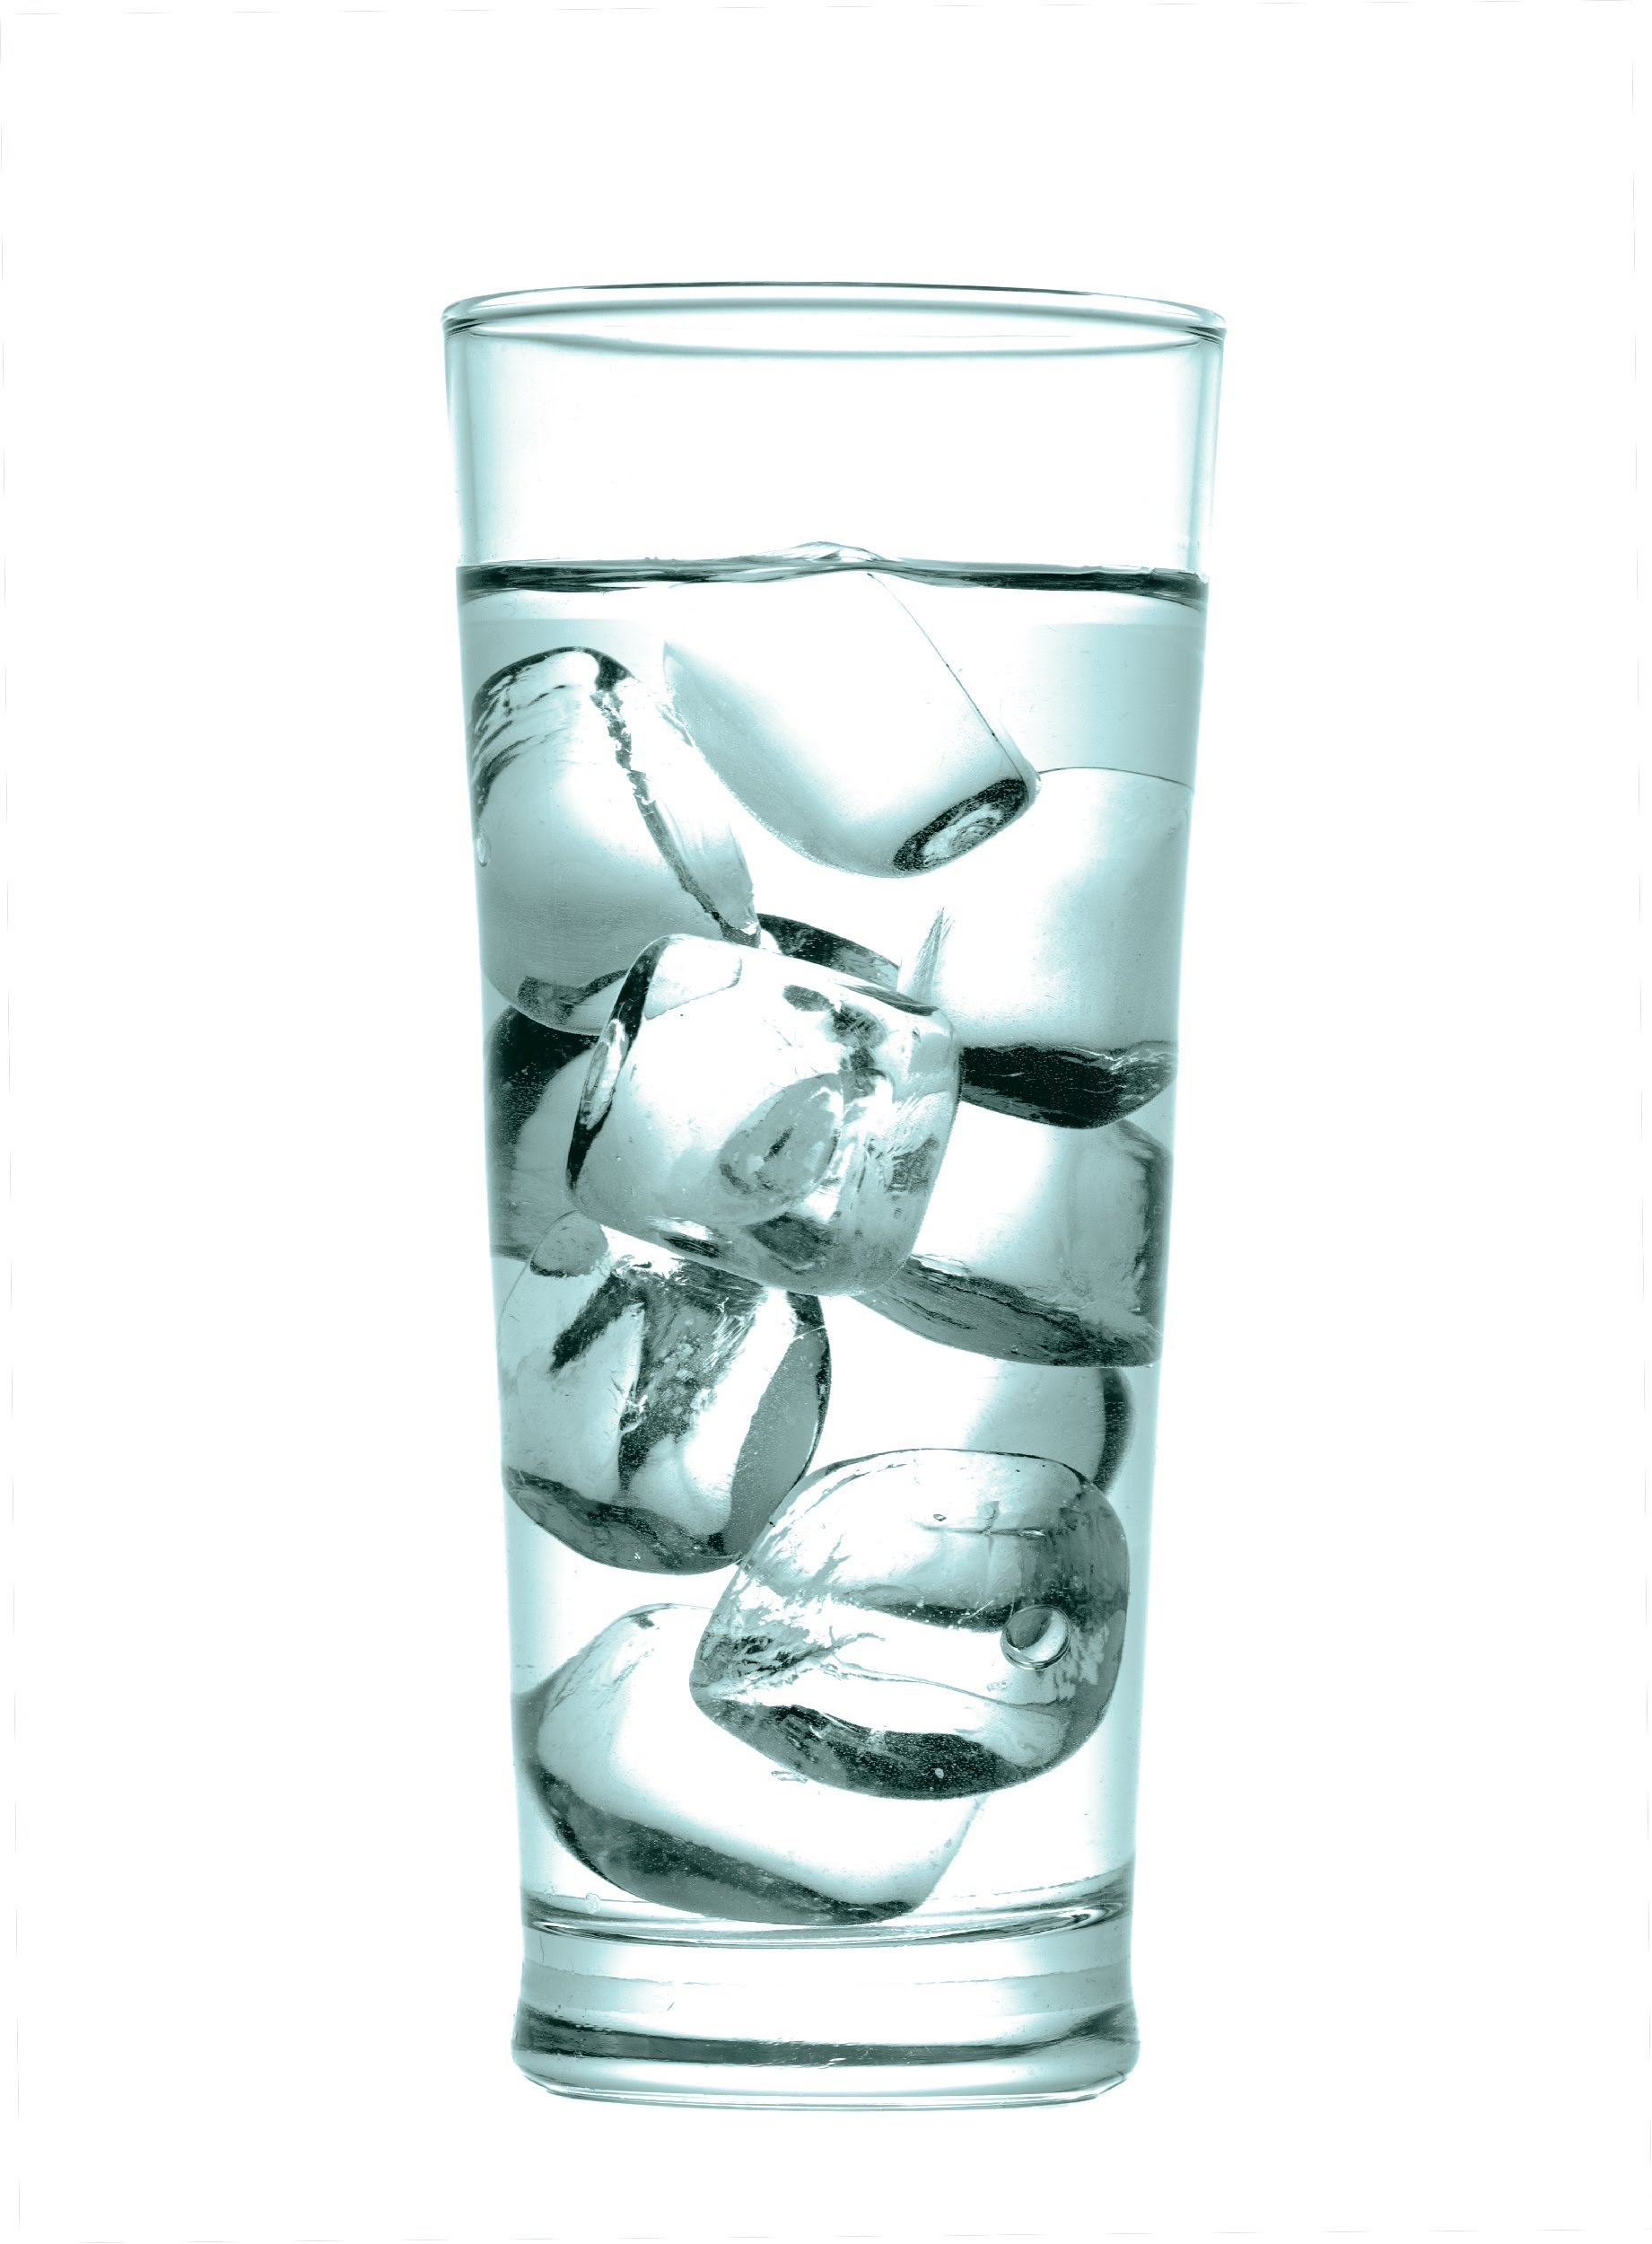 HOW TO MAKE ICE COLD DRINKING WATER 96 GEEZER TIPS LIFE HACKS - YouTube - Ice In Glass PNG